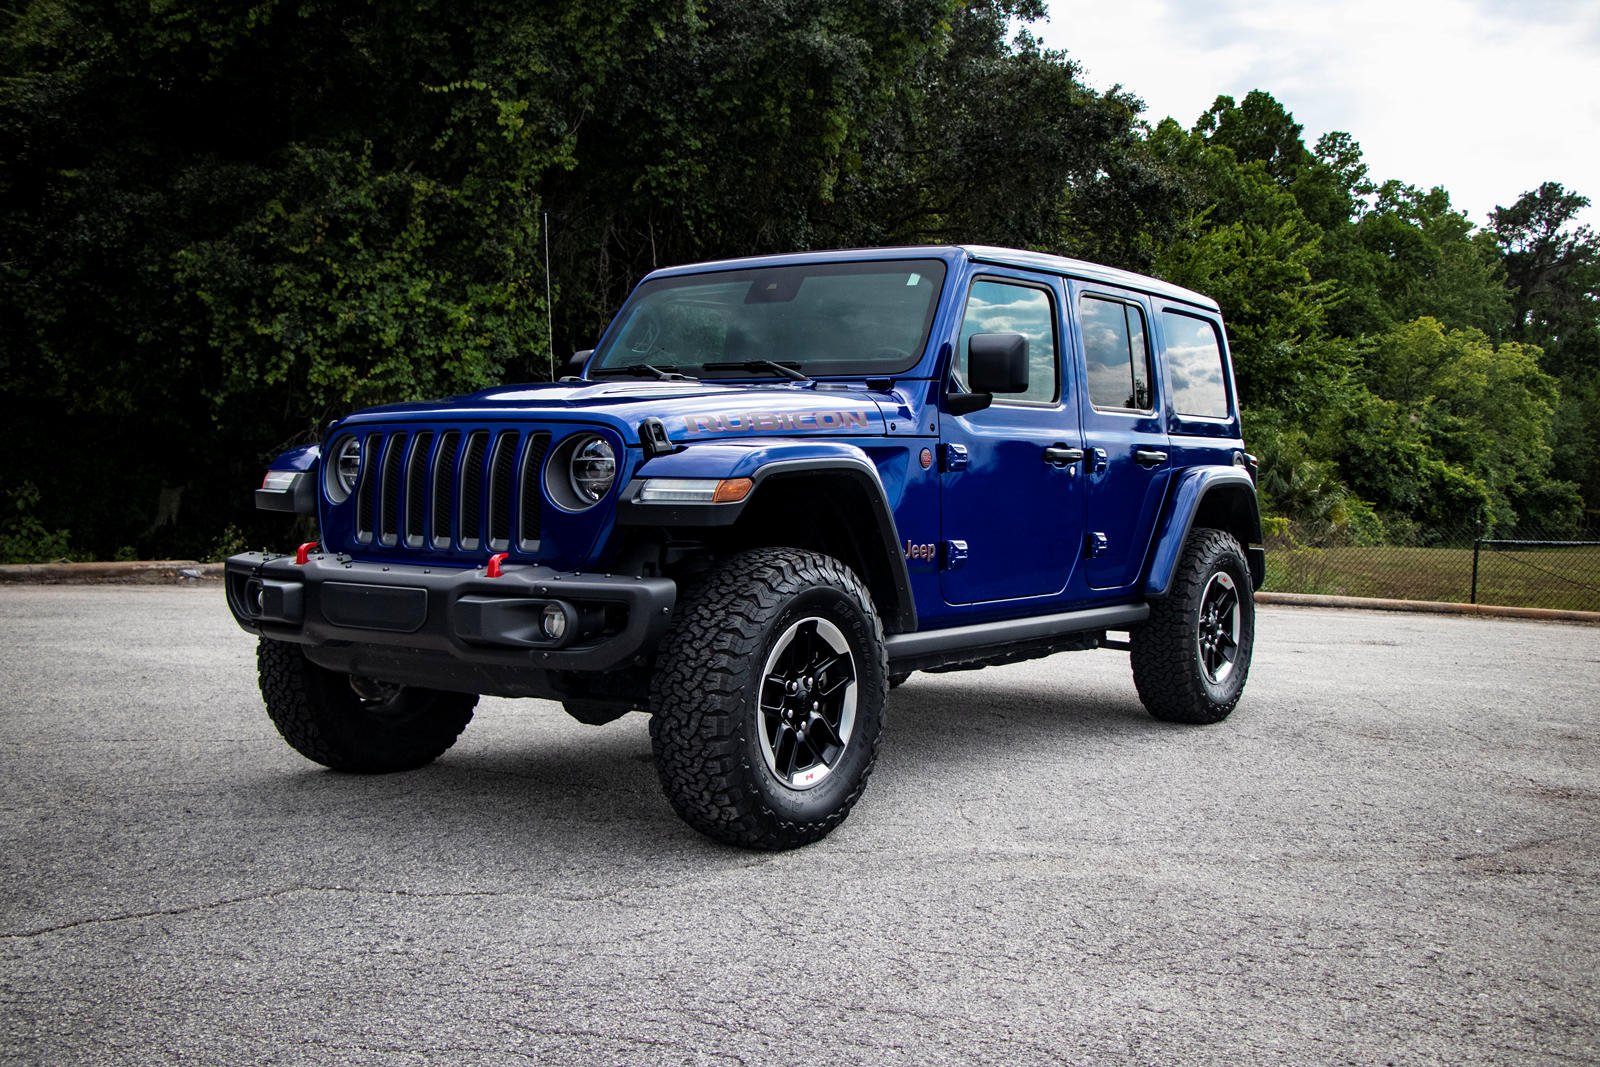 2020 Jeep Wrangler Unlimited Review Trims Specs Price New Interior Features Exterior Design And Specifications Carbuzz